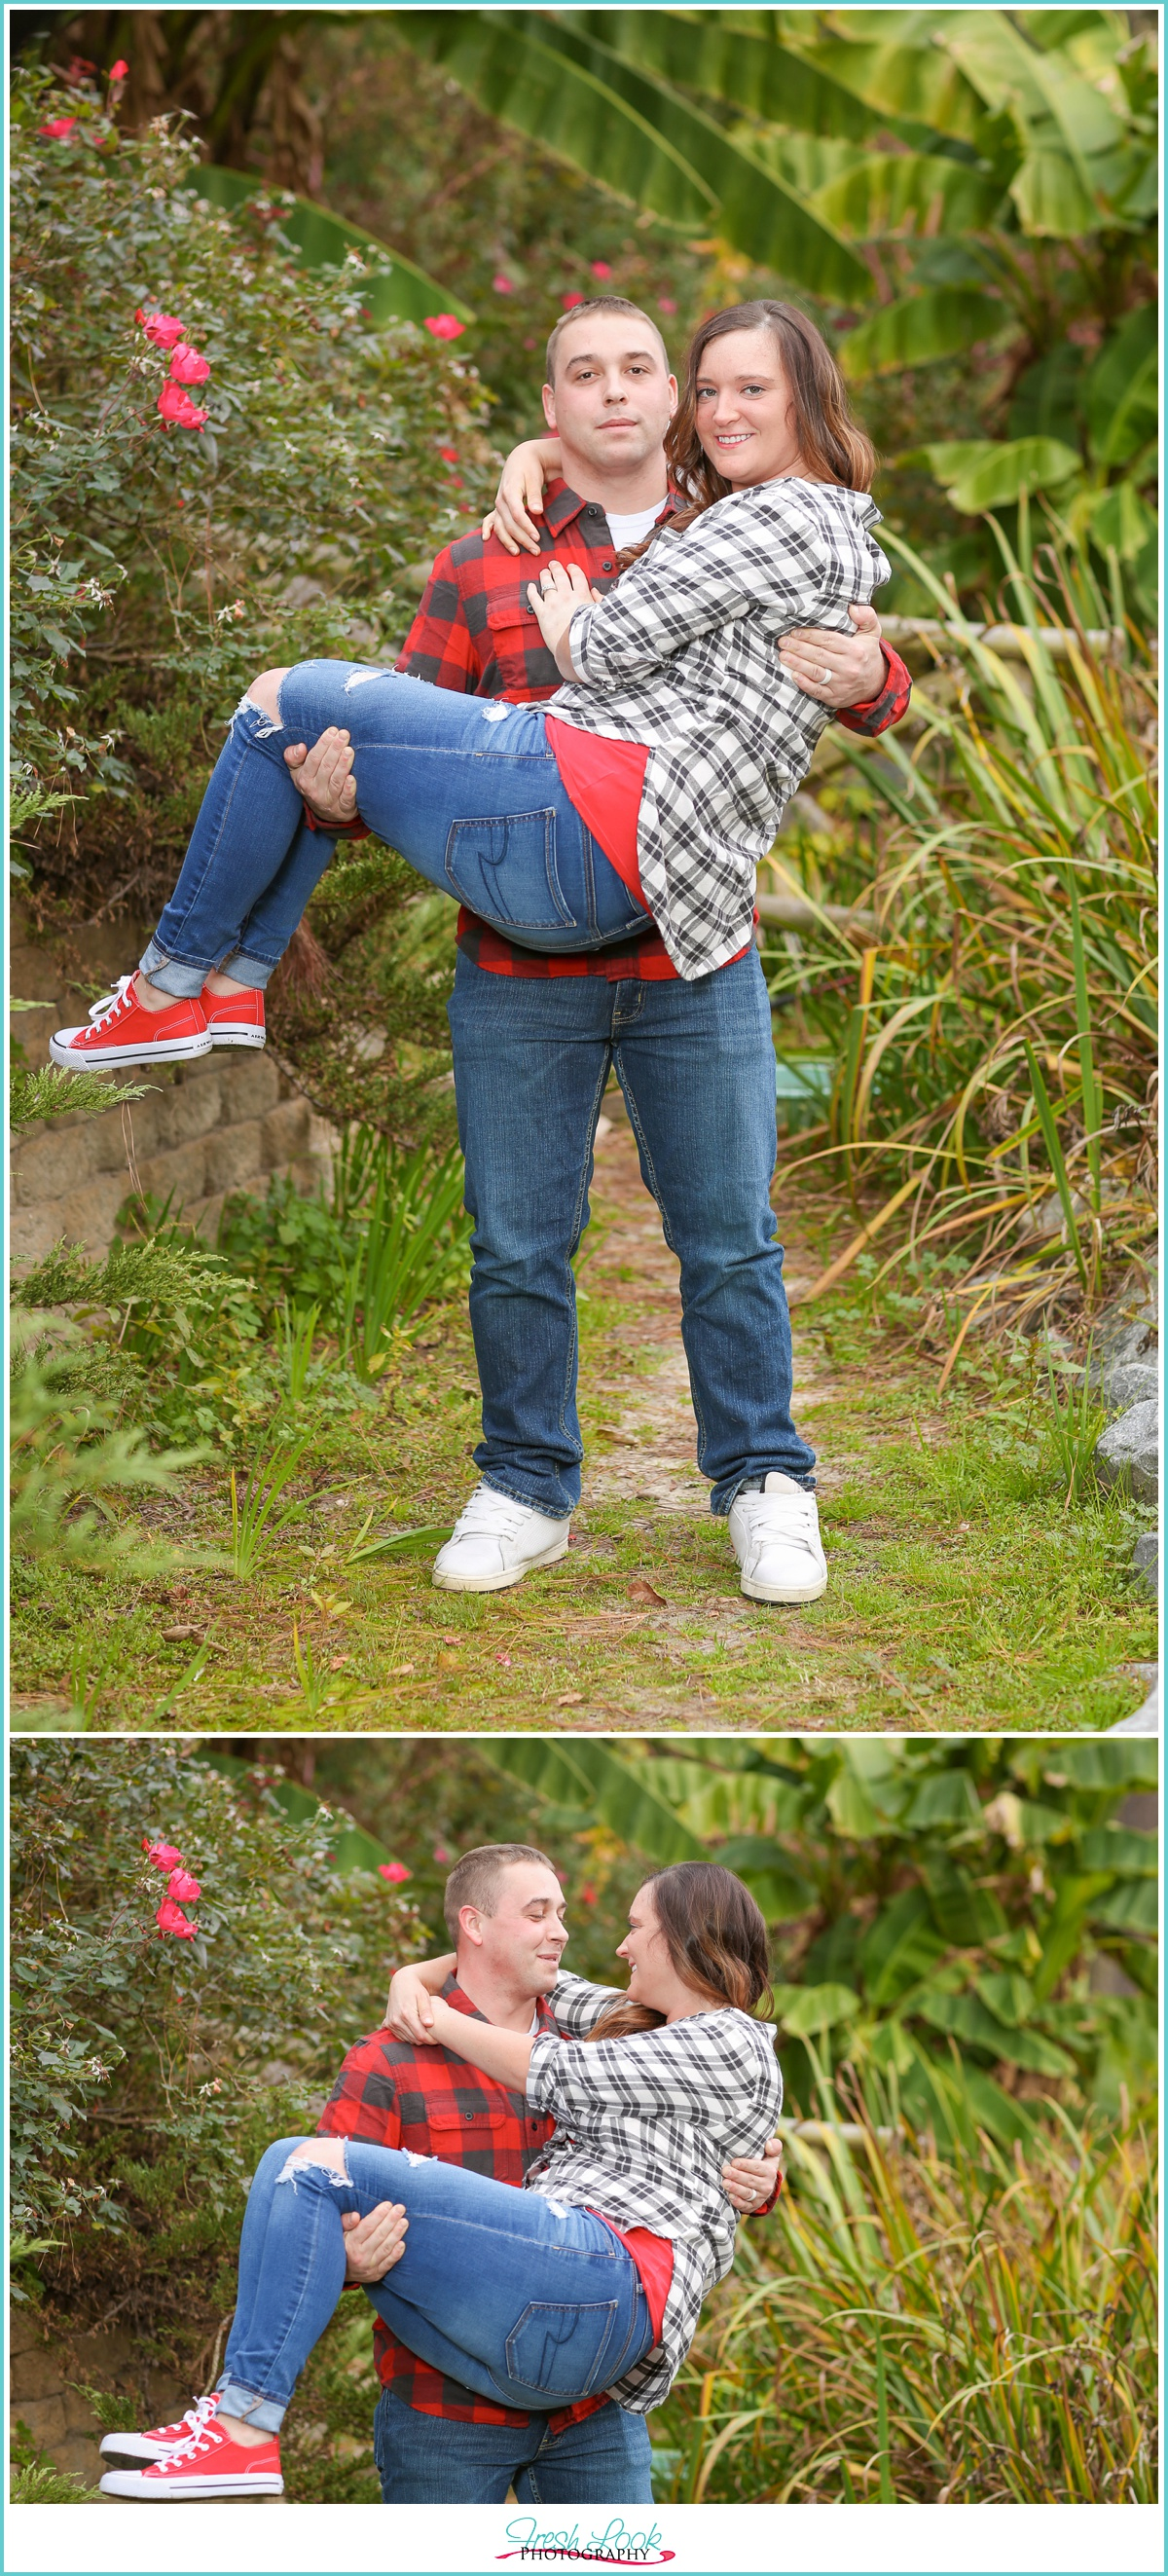 goofing off together engagement photos